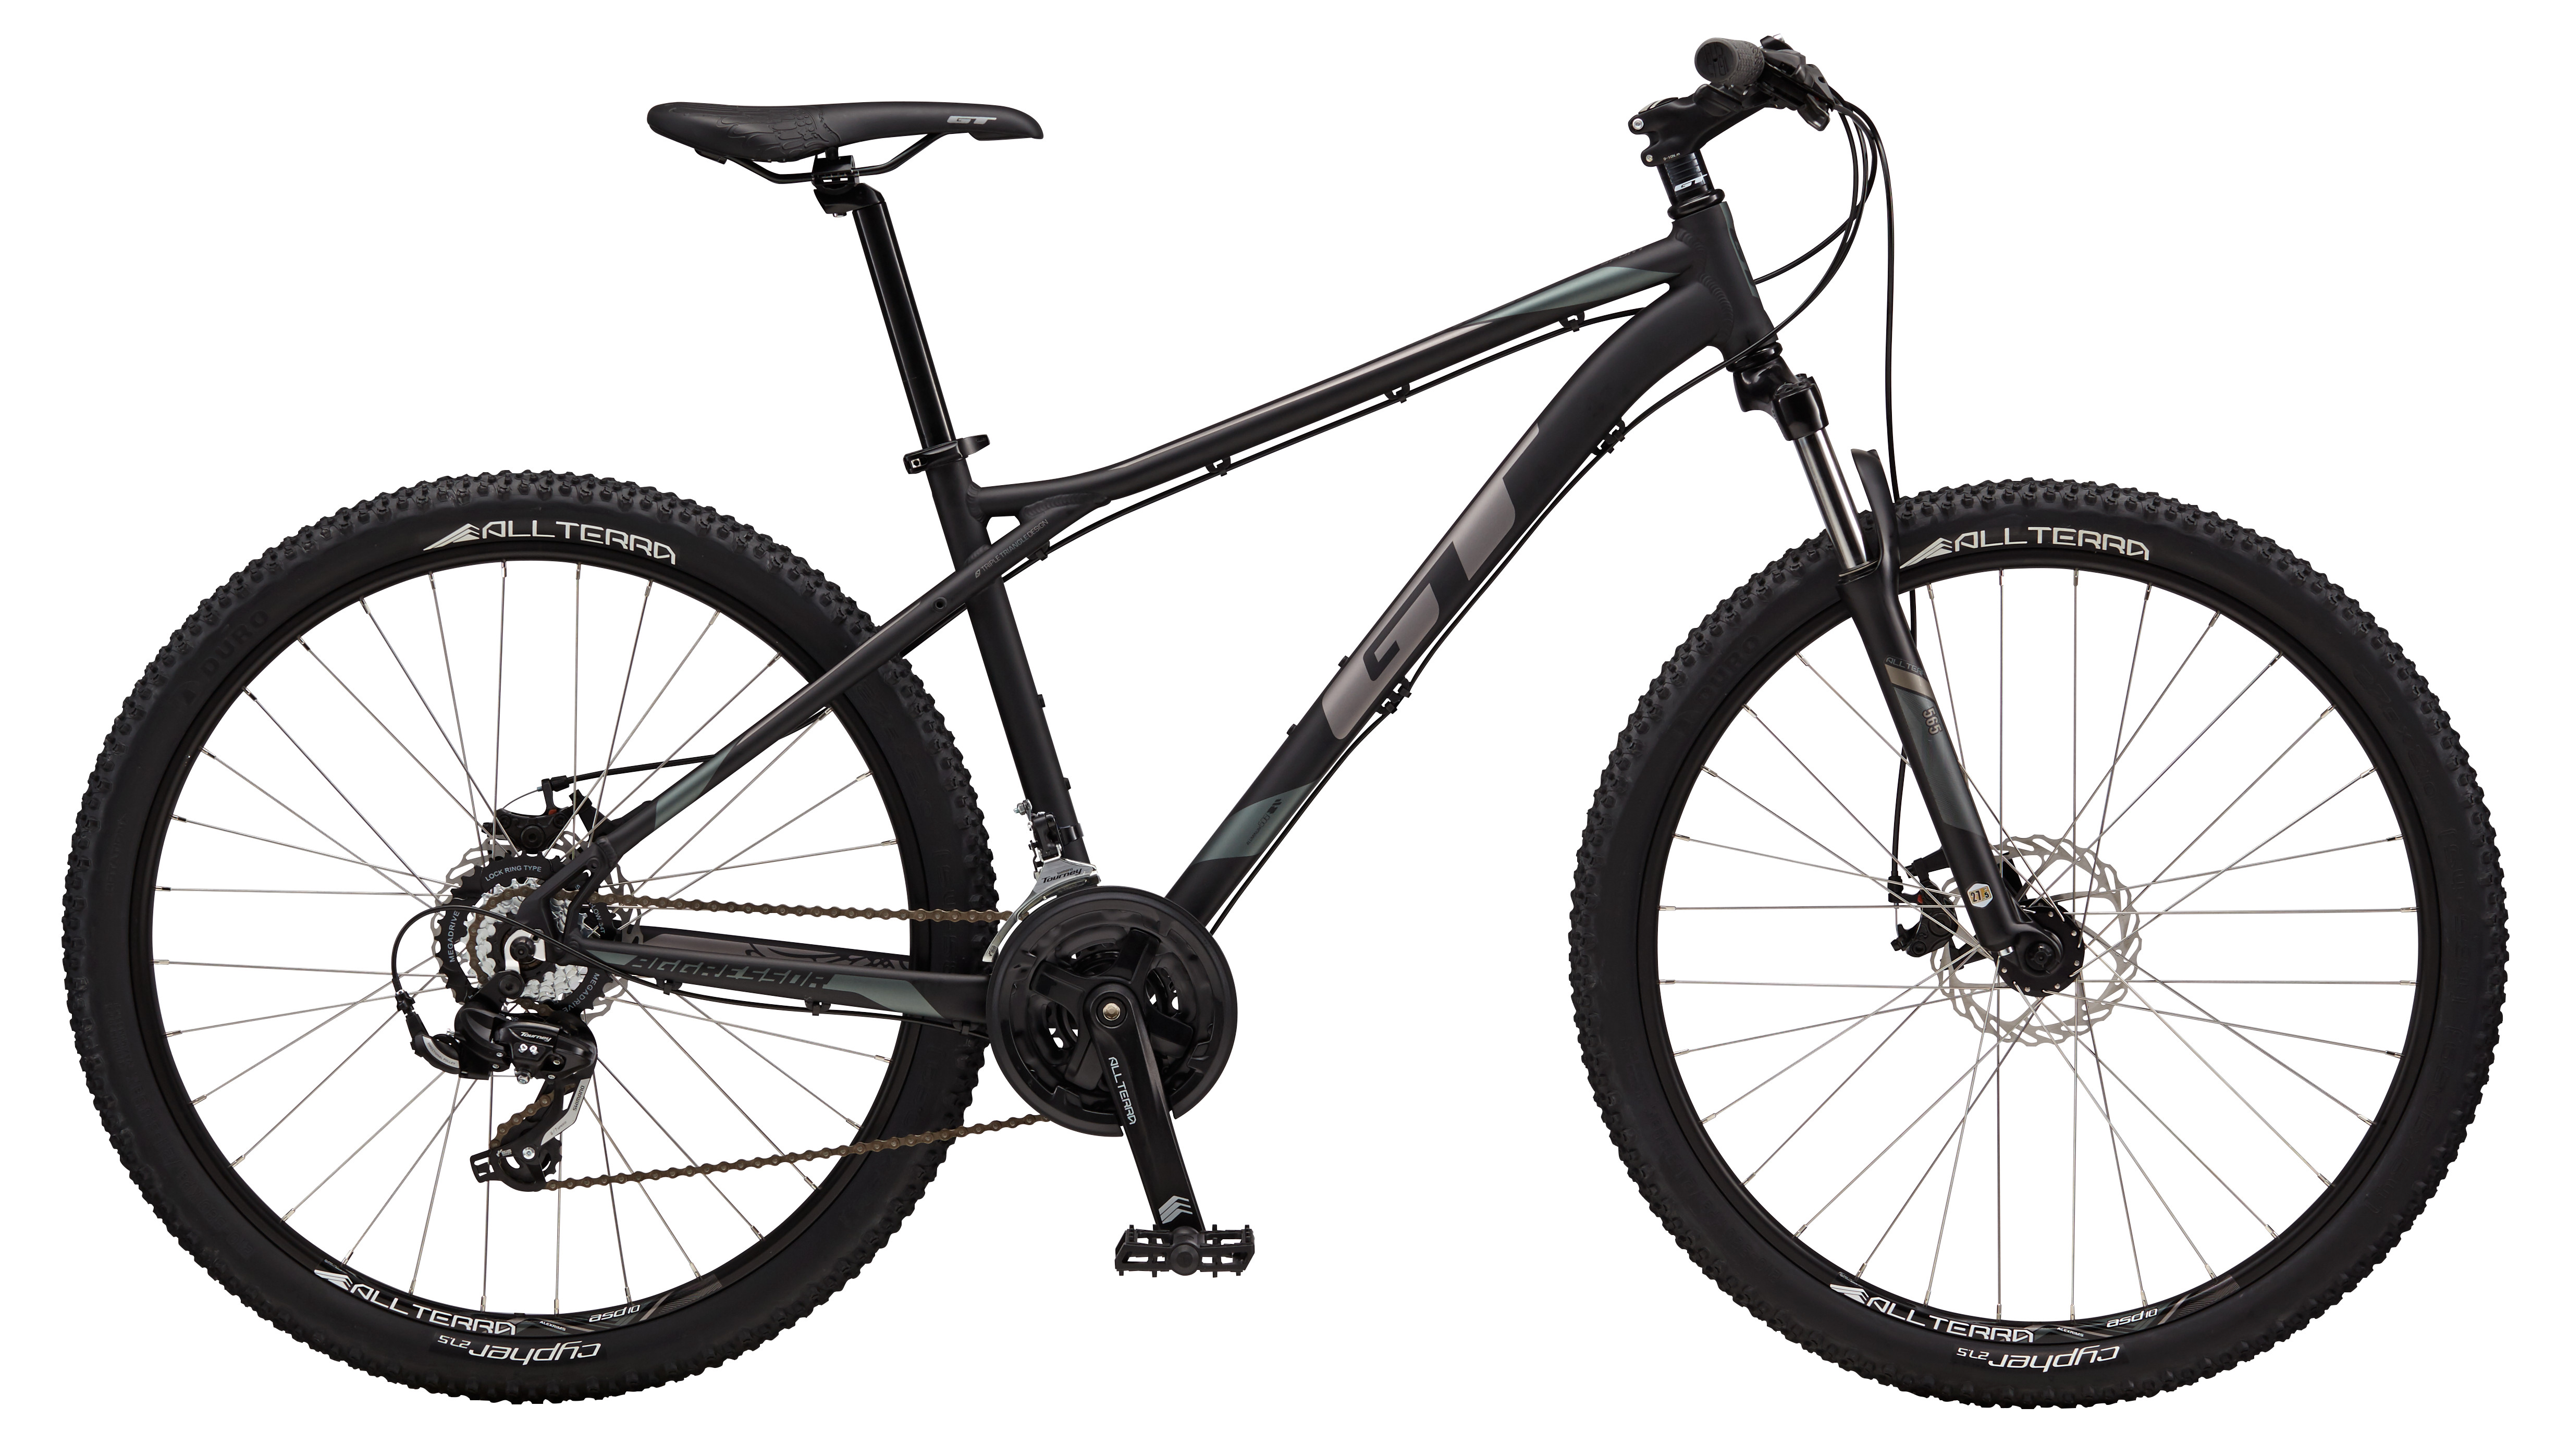 "2017 Aggressor Sport, 27.5"" wheel, black GT Mountain bicycle"